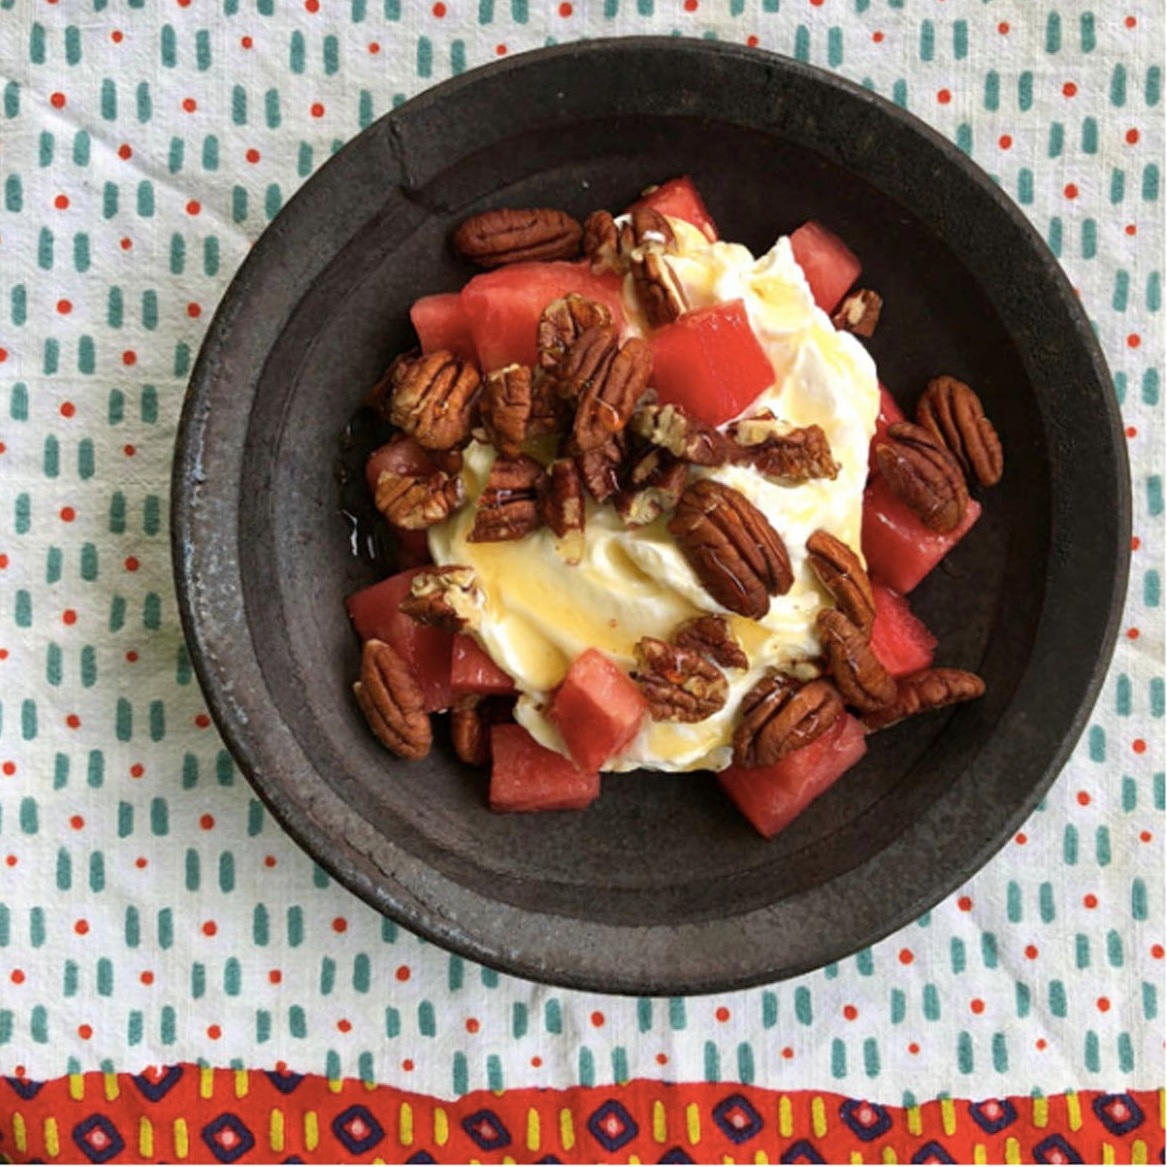 SUMMER WATERMELON! A few of may favorite ways to eat it include:    — Watermelon with plain greek yogurt, pecans, and honey    — Watermelon with feta, fresh basil, balsamic reduction (or glaze, and olive oil